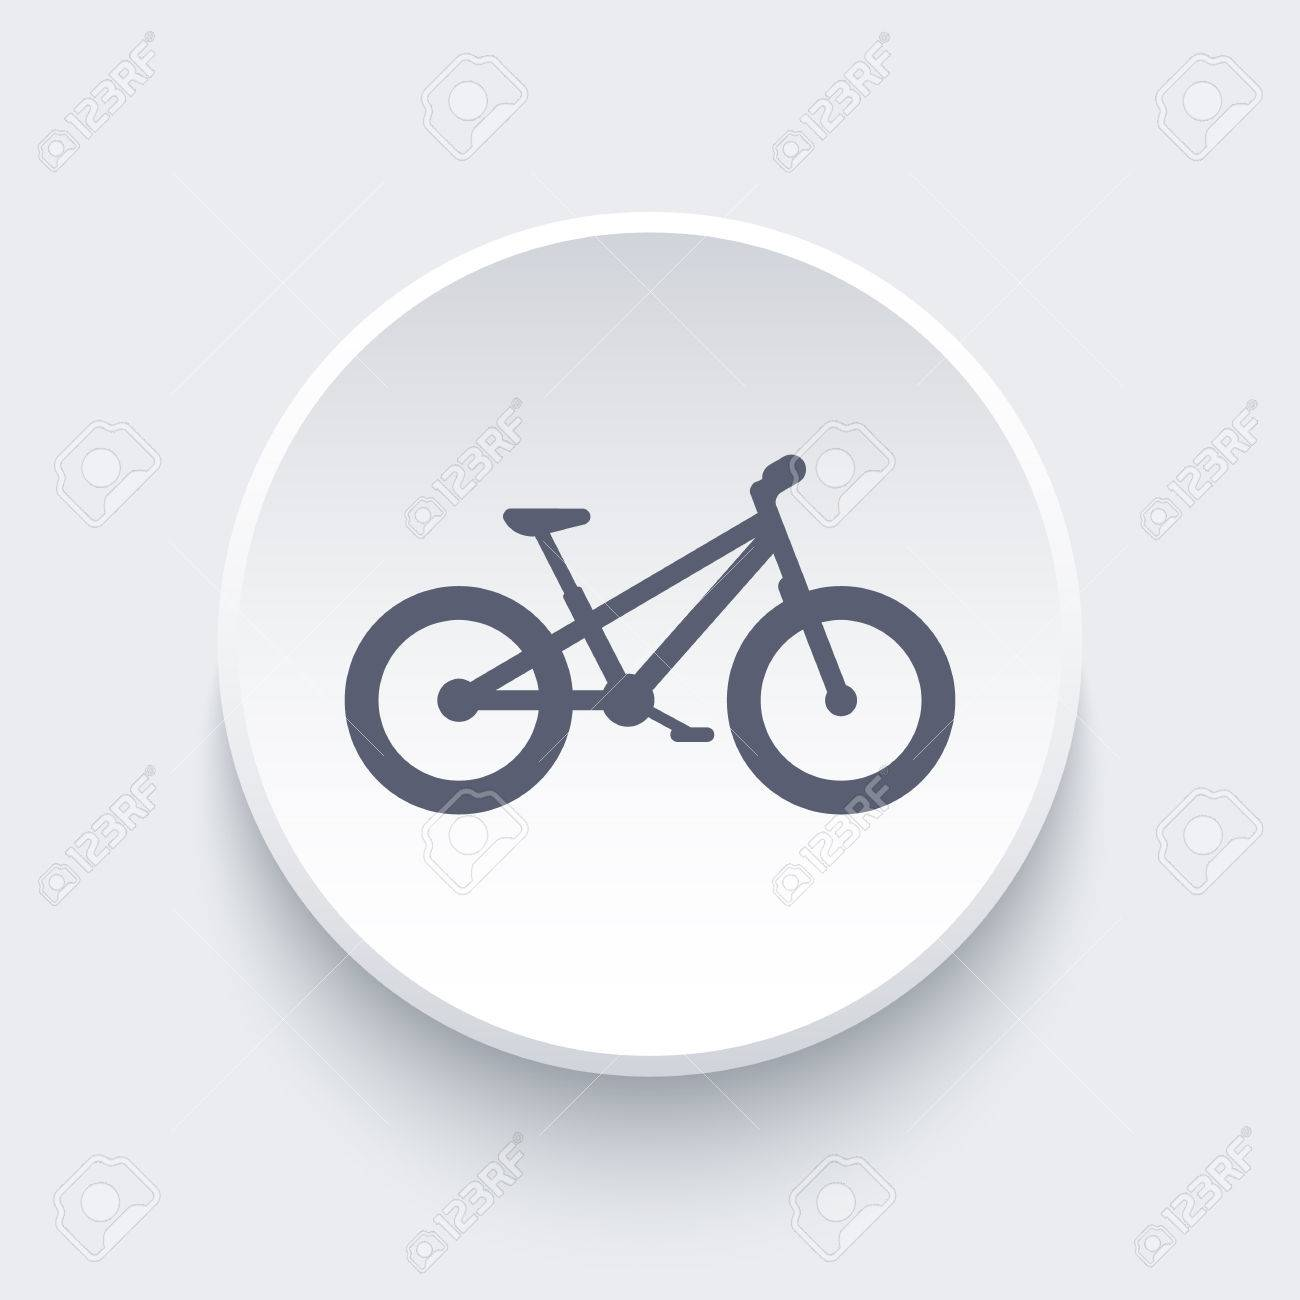 Fat Bike Bicycle Offroad Bike Fat Bike Round Icon Illustration Royalty Free Cliparts Vetores E Ilustracoes Stock Image 57679515